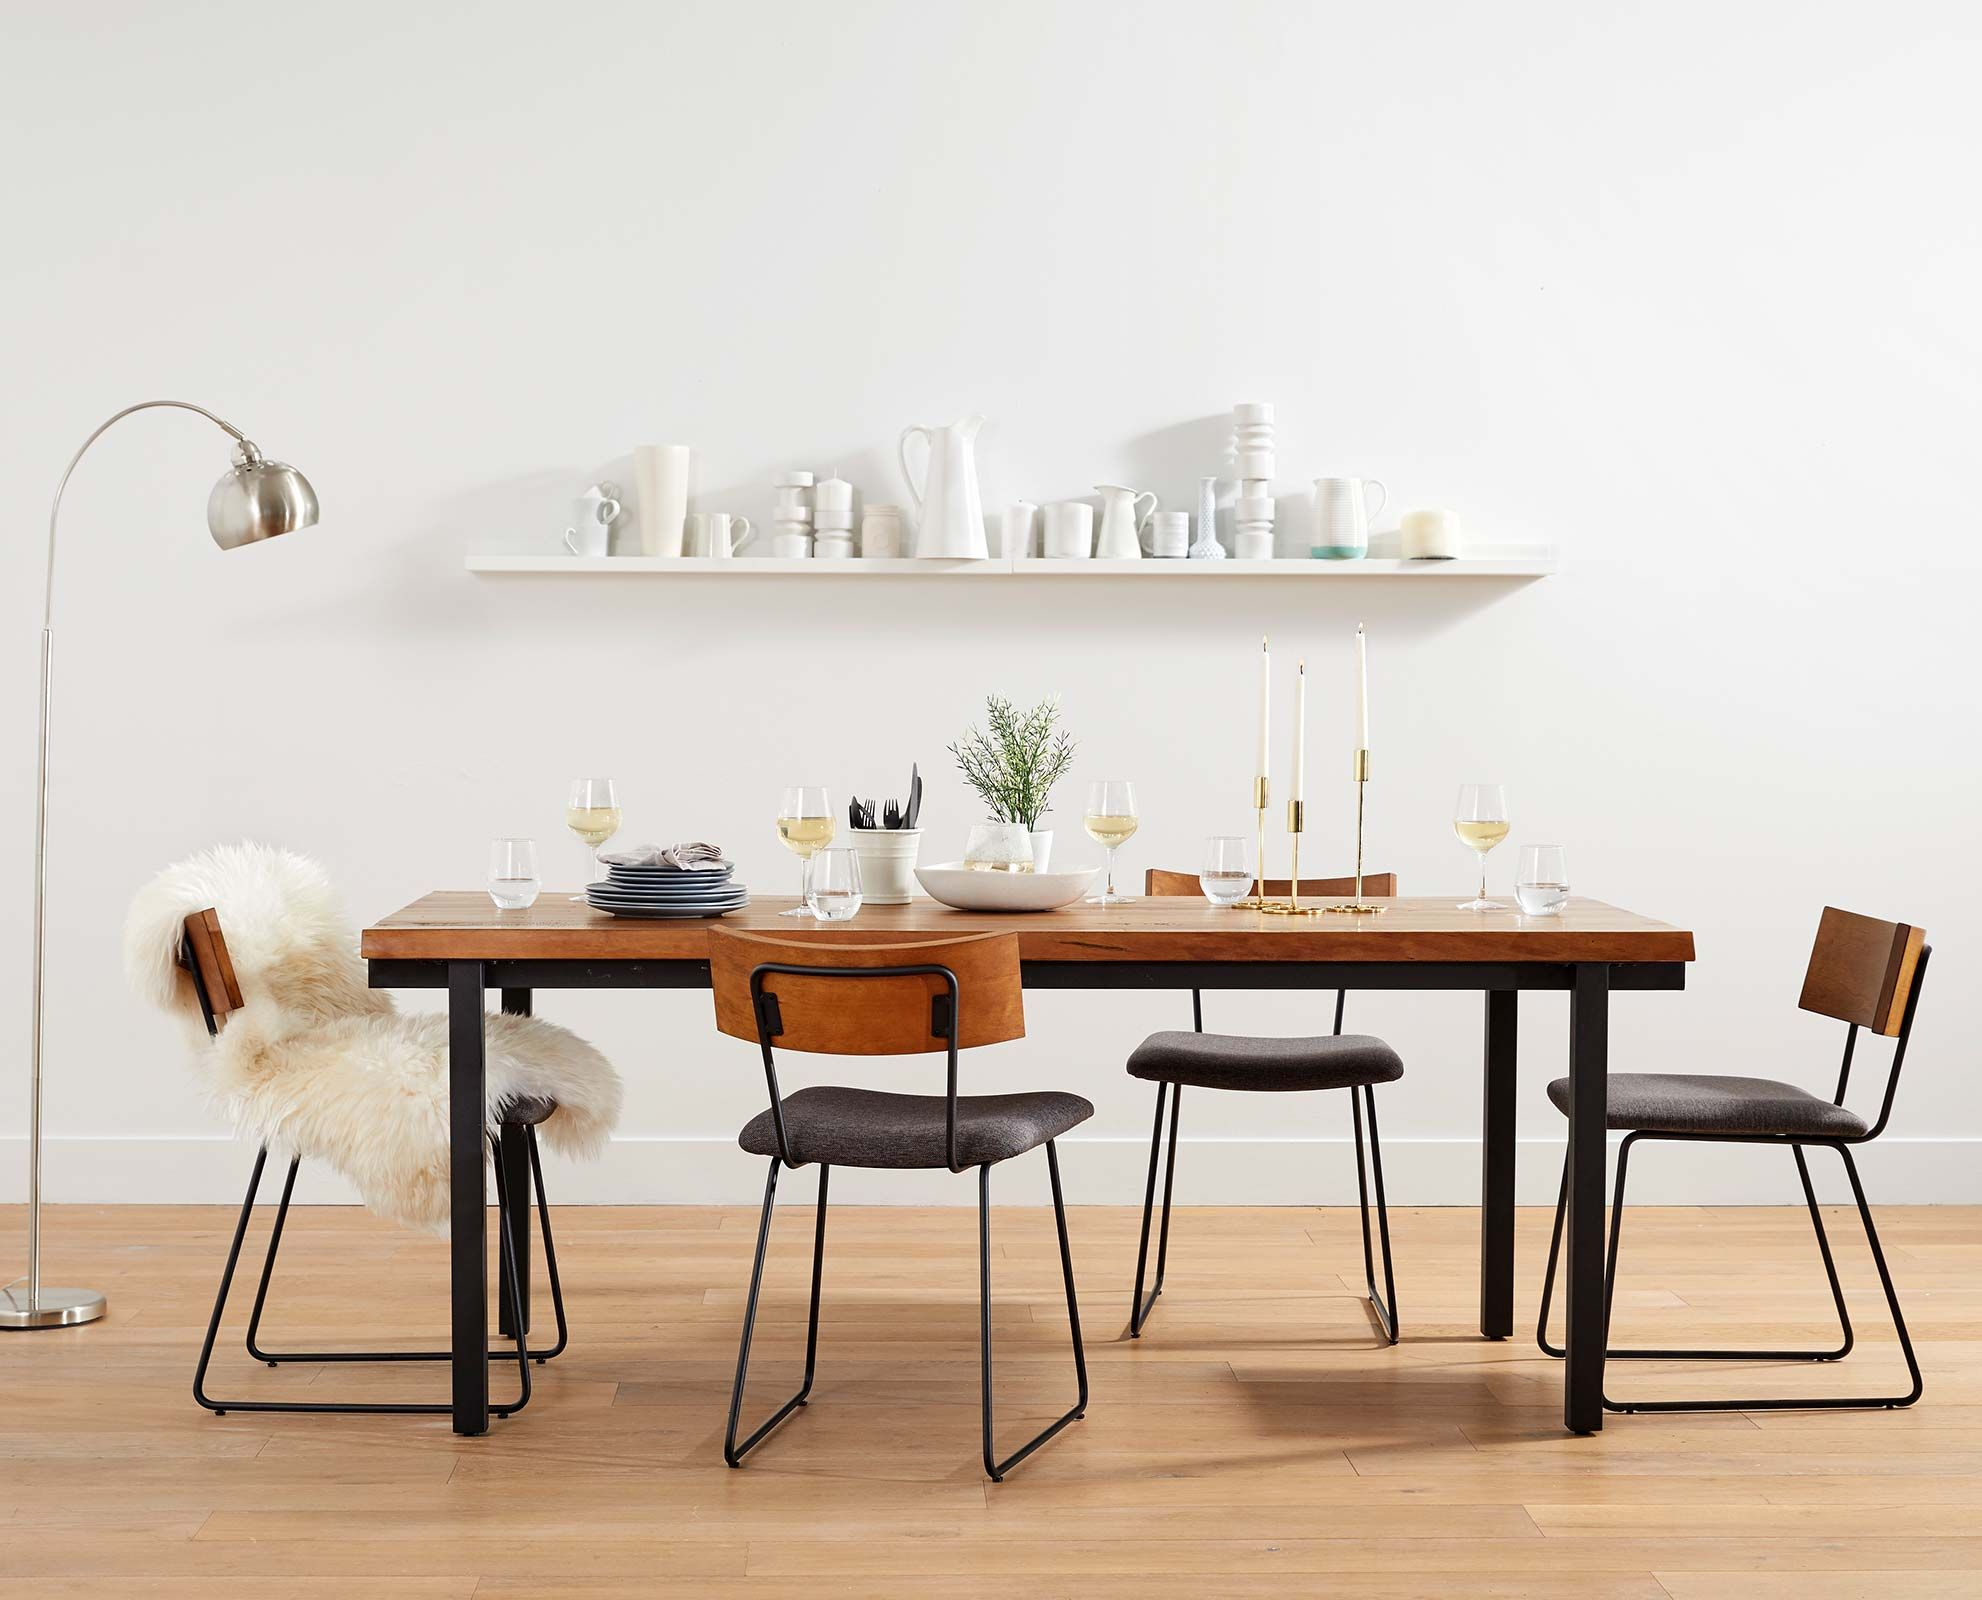 Scandinavian Designs The Traditional Farm Table Meets Rustic